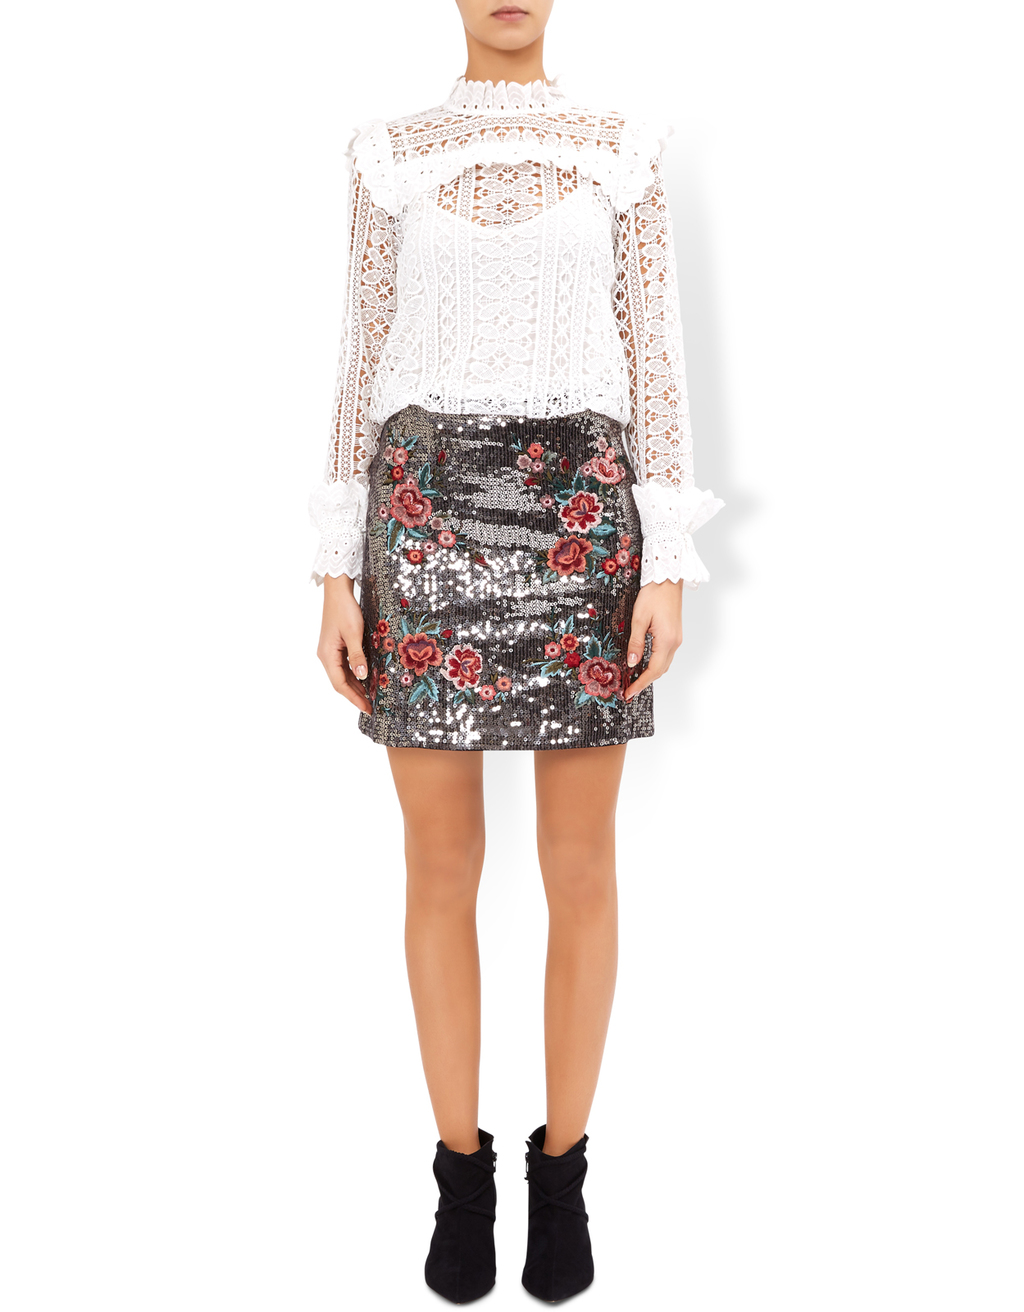 Tabia Sequin Skirt - style: straight; fit: body skimming; waist: high rise; secondary colour: true red; predominant colour: black; occasions: casual, creative work; length: just above the knee; fibres: cotton - 100%; pattern type: fabric; pattern: patterned/print; texture group: other - light to midweight; multicoloured: multicoloured; season: a/w 2016; wardrobe: highlight